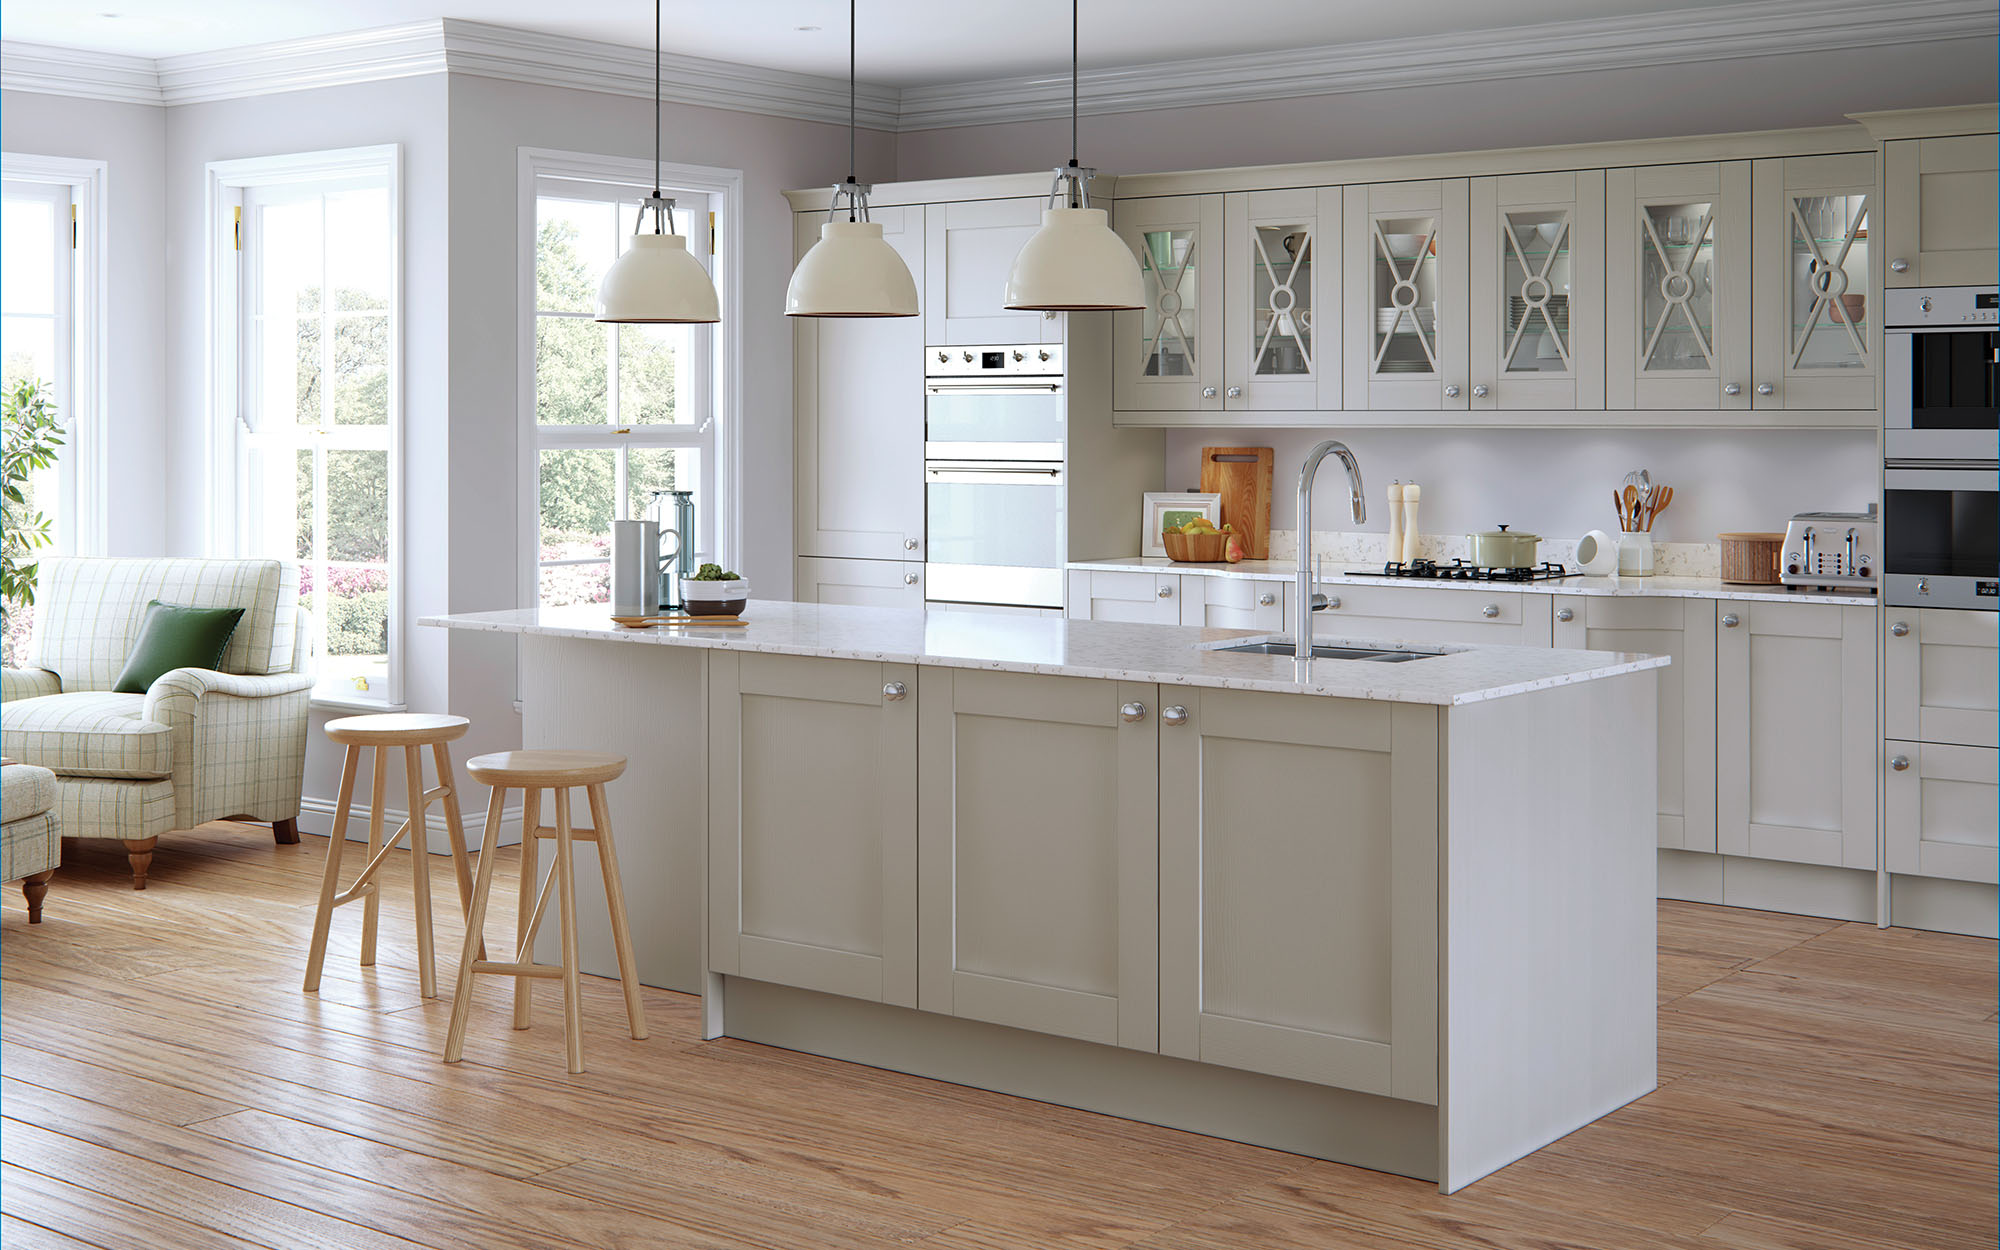 Classic Madison kitchen in painted light grey